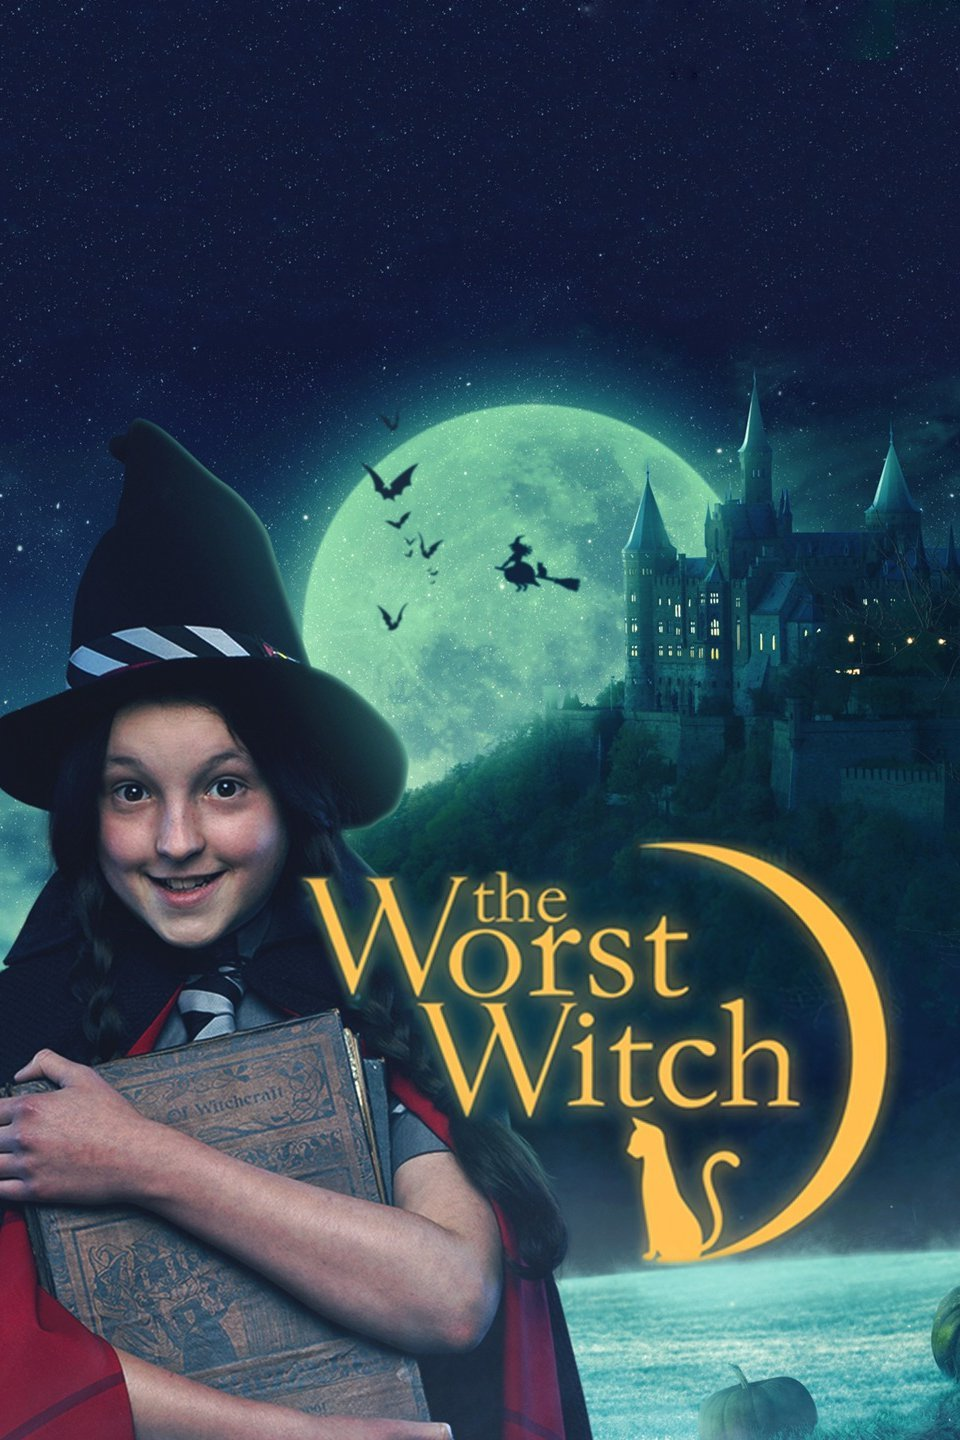 The Worst Witch S01 E09